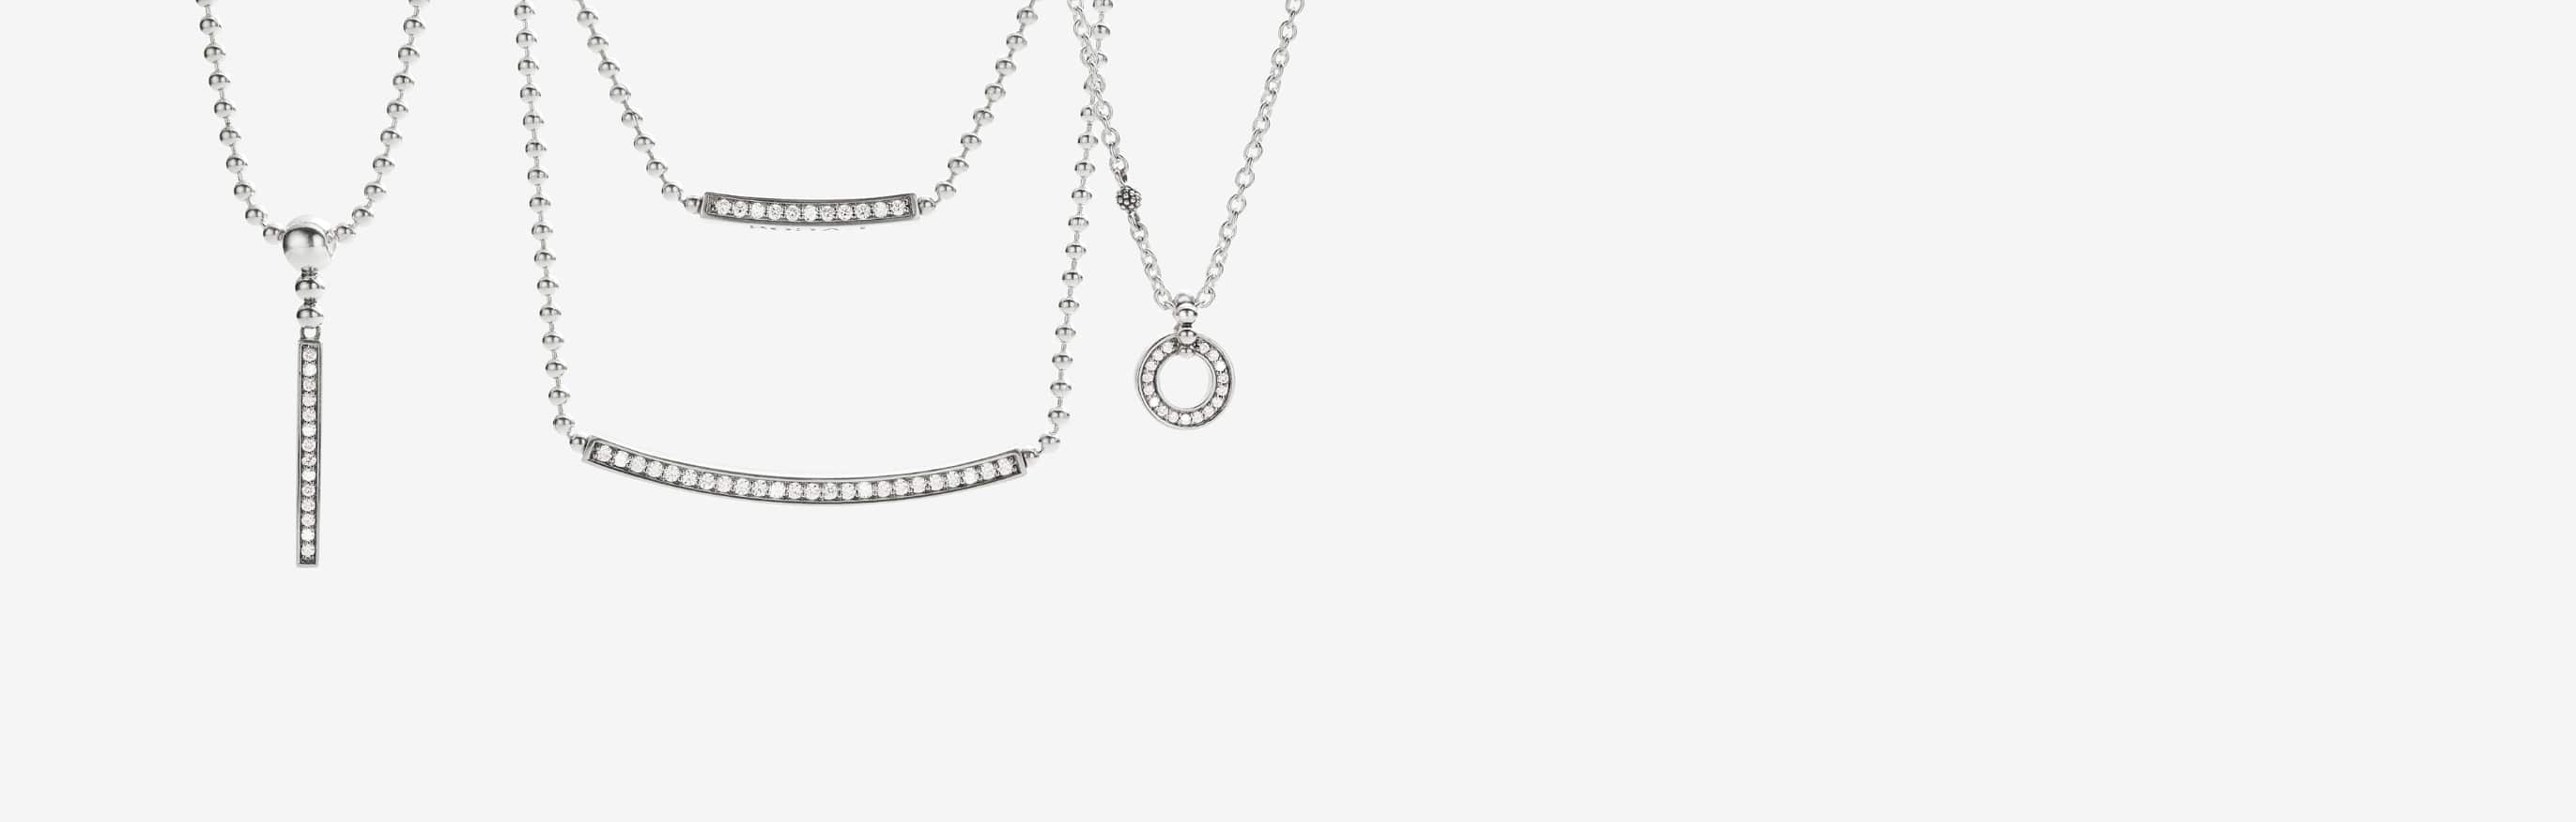 Diamond station necklaces and diamond pendant necklaces set in sterling silver.